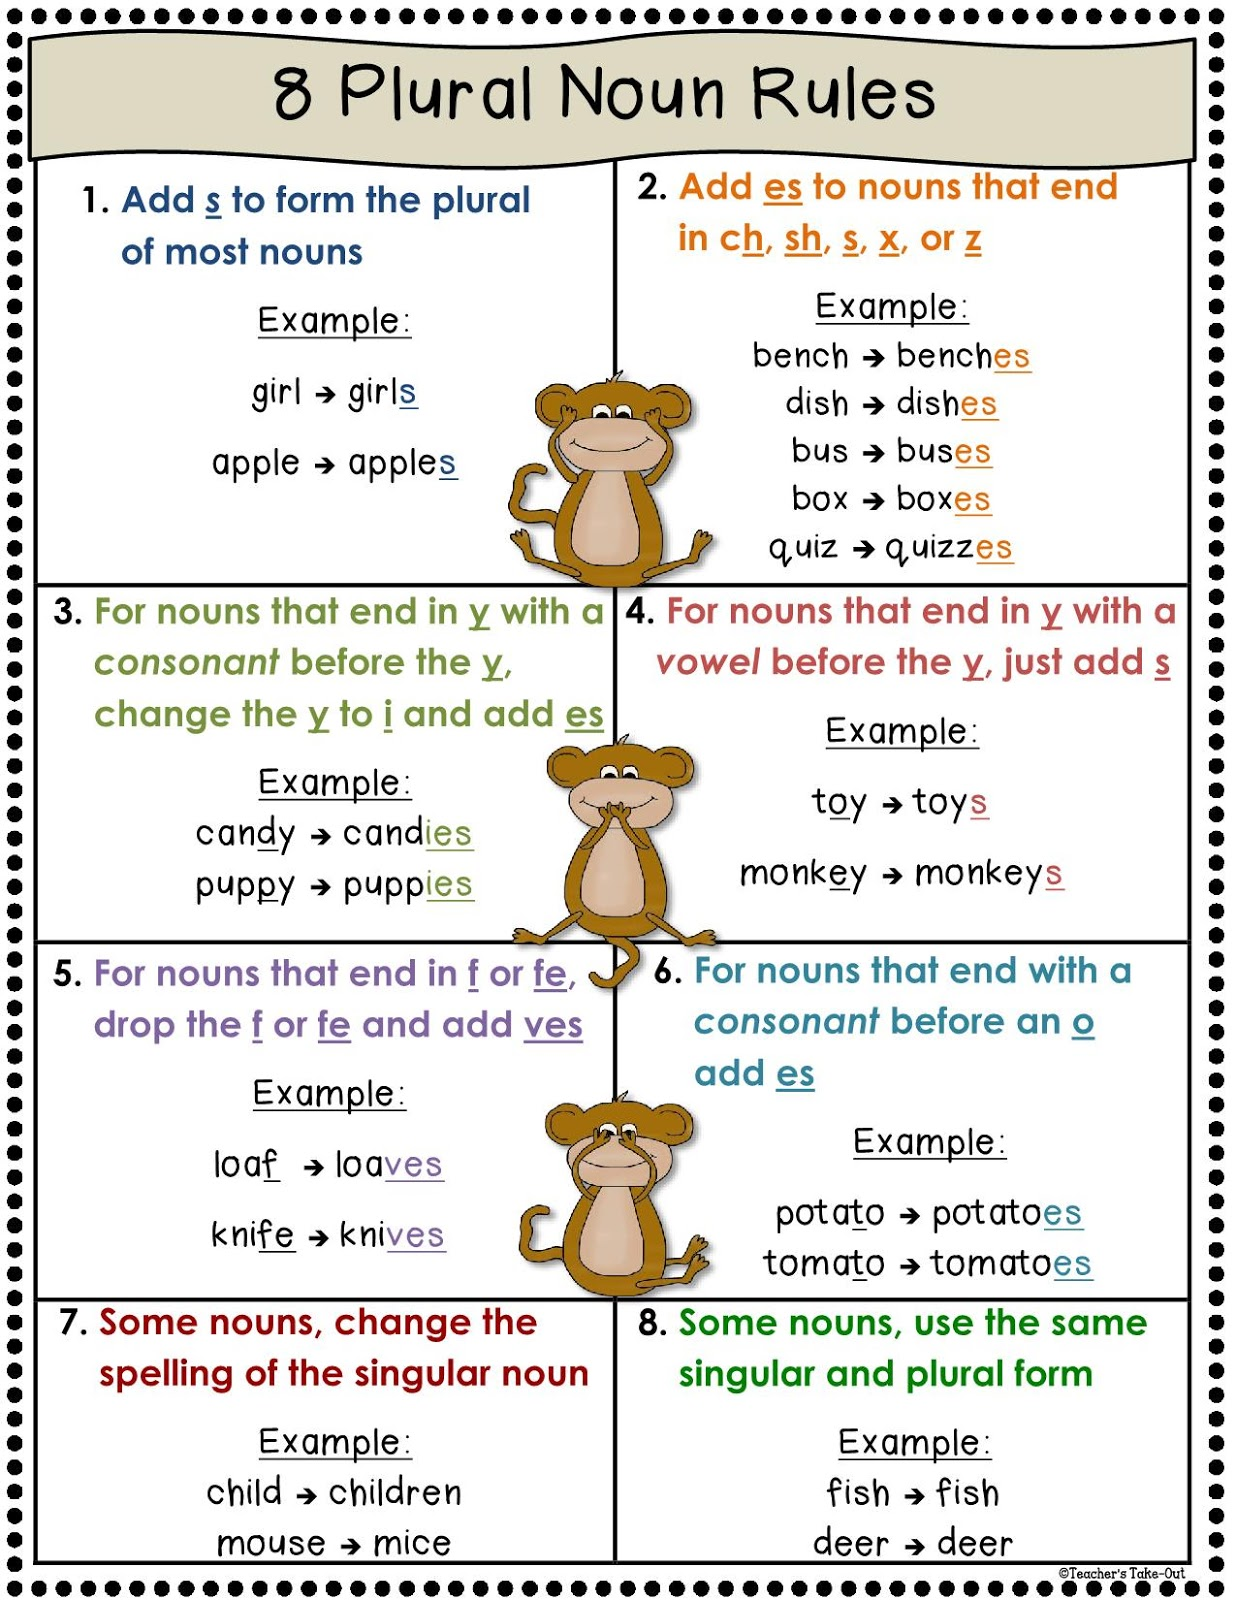 We Love English Plural Noun Rules Poster